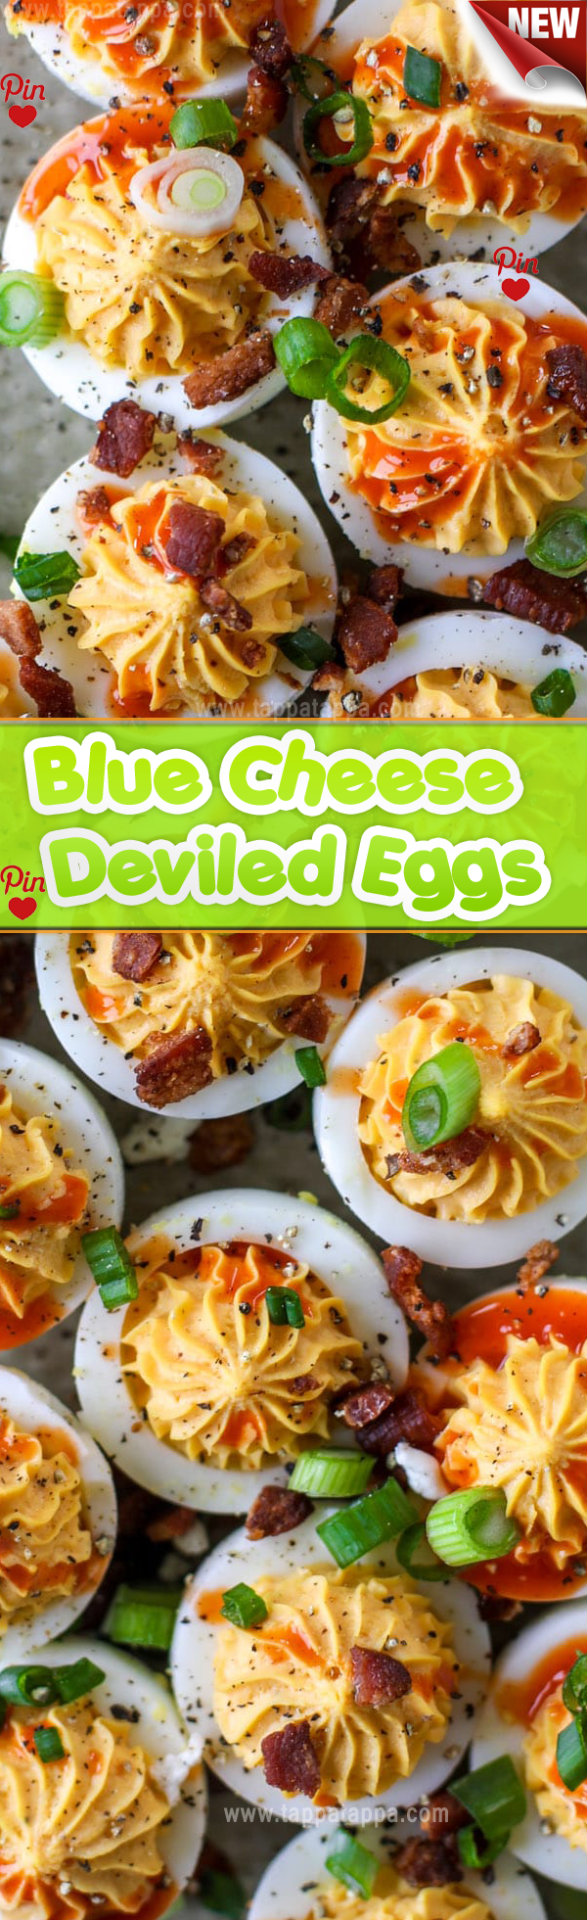 Buffalo Blue Cheese Deviled Eggs Recipe Not that I ever ate them. Even now that I have the gift of hindsight I cant say what governed my sensibilities around deviled eggs as a child. Or any other food for that matter which is a common trial many parents face when feeding their children. I was no exception. #czechfood